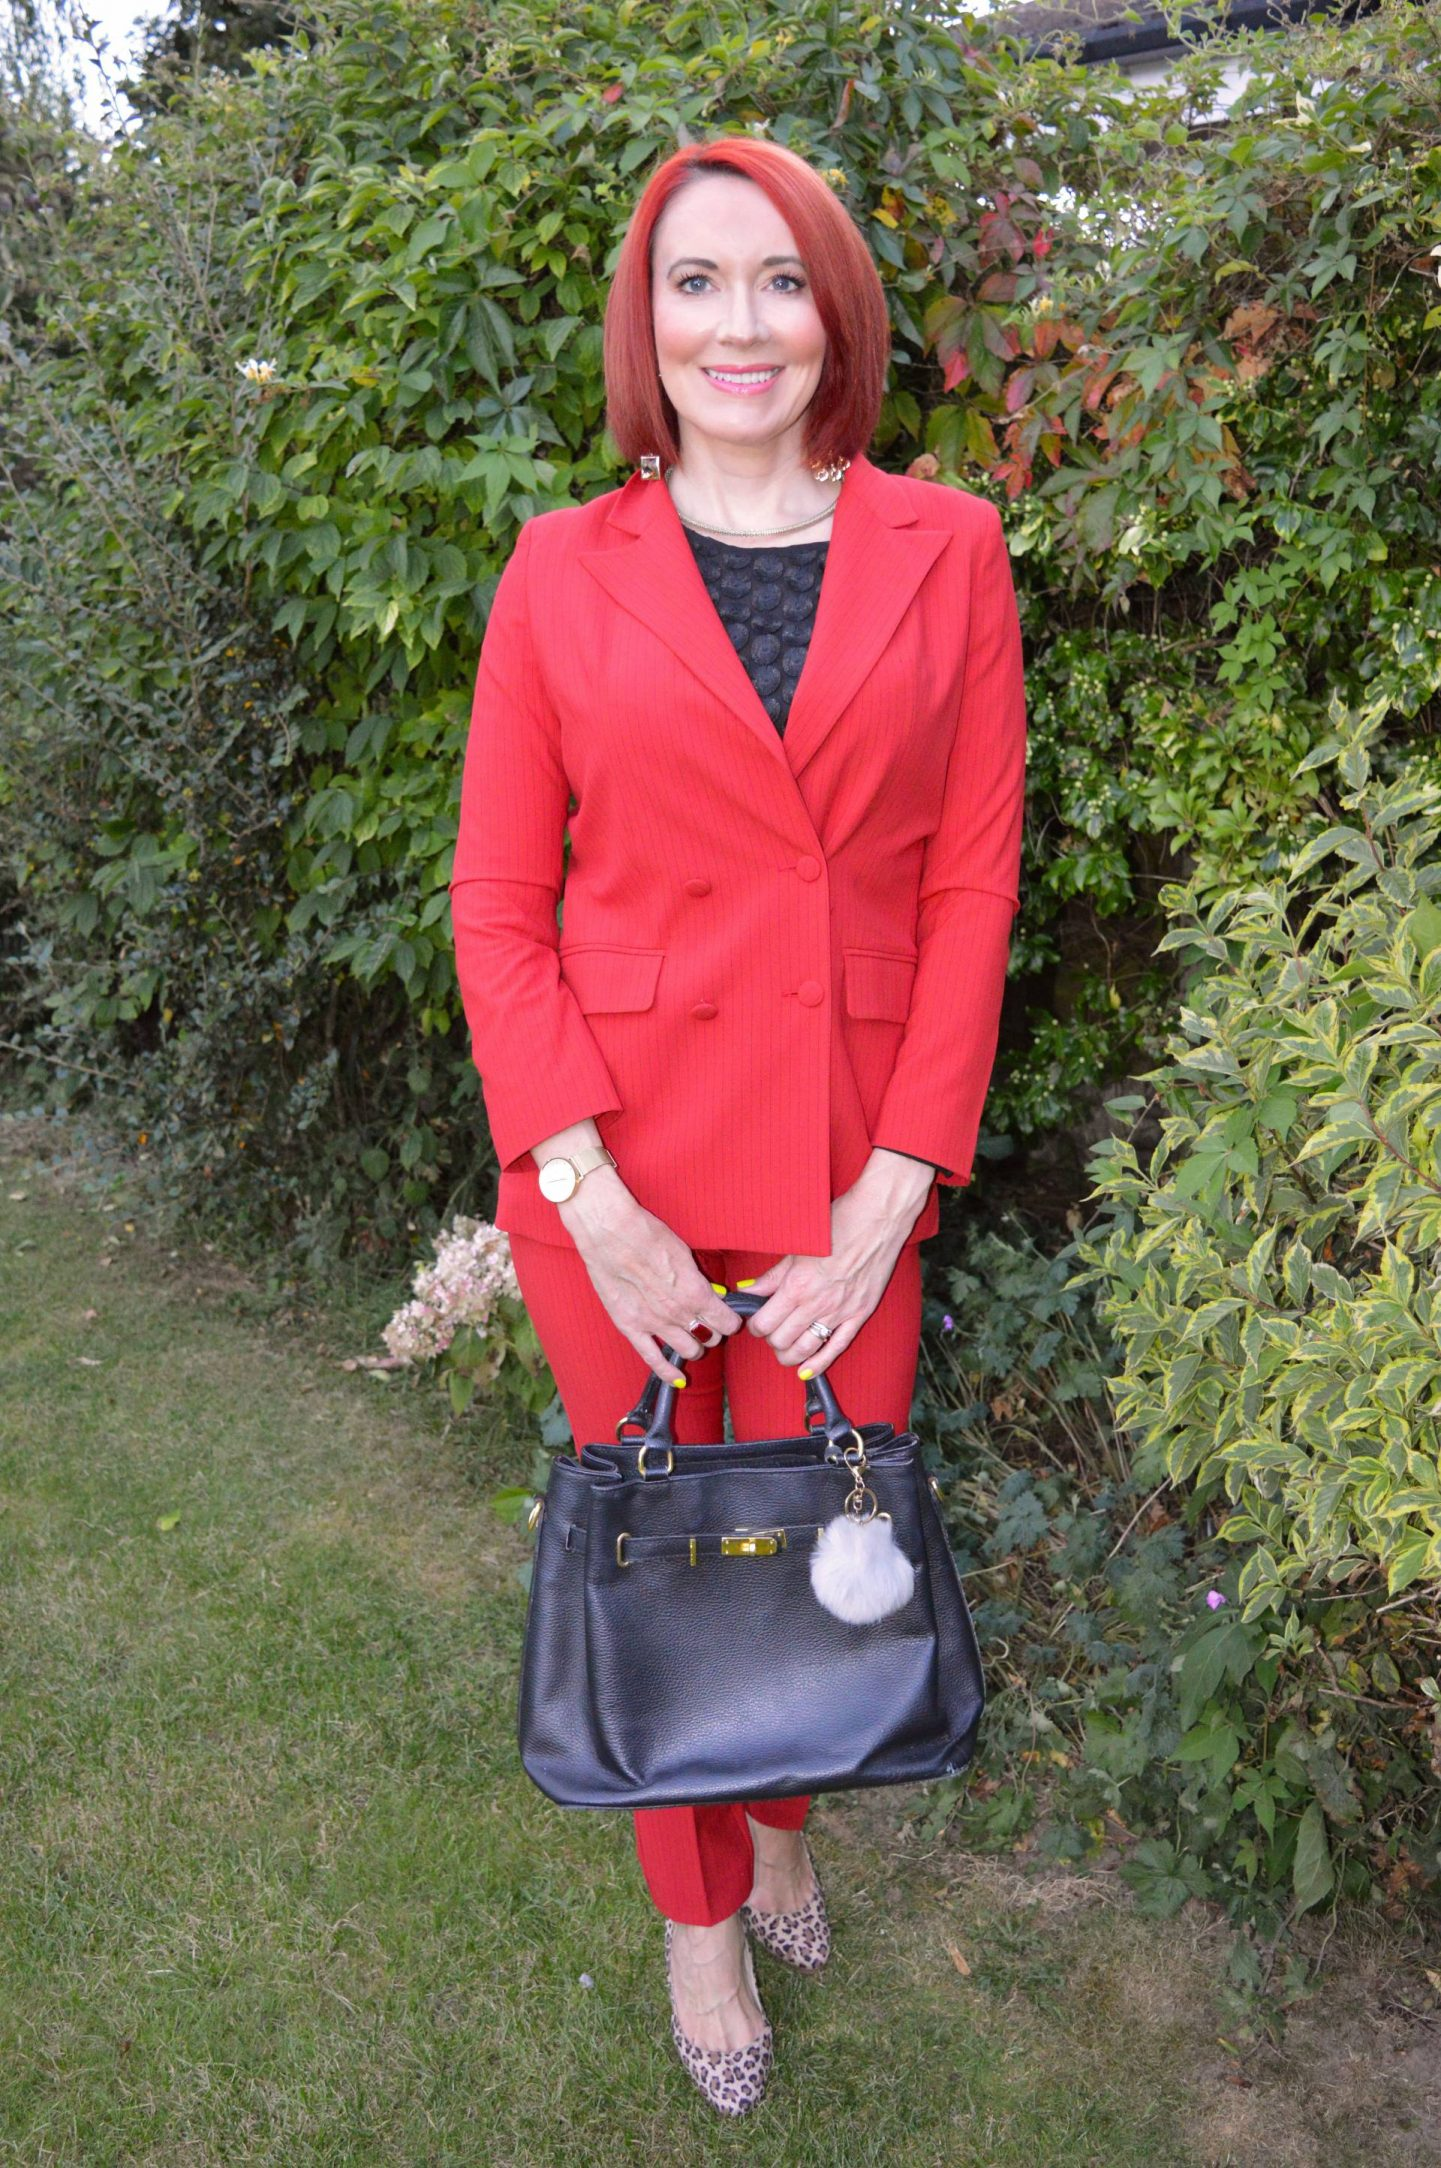 Red Alert Trouser Suit, Style & Suit Red Alert blazer and trousers